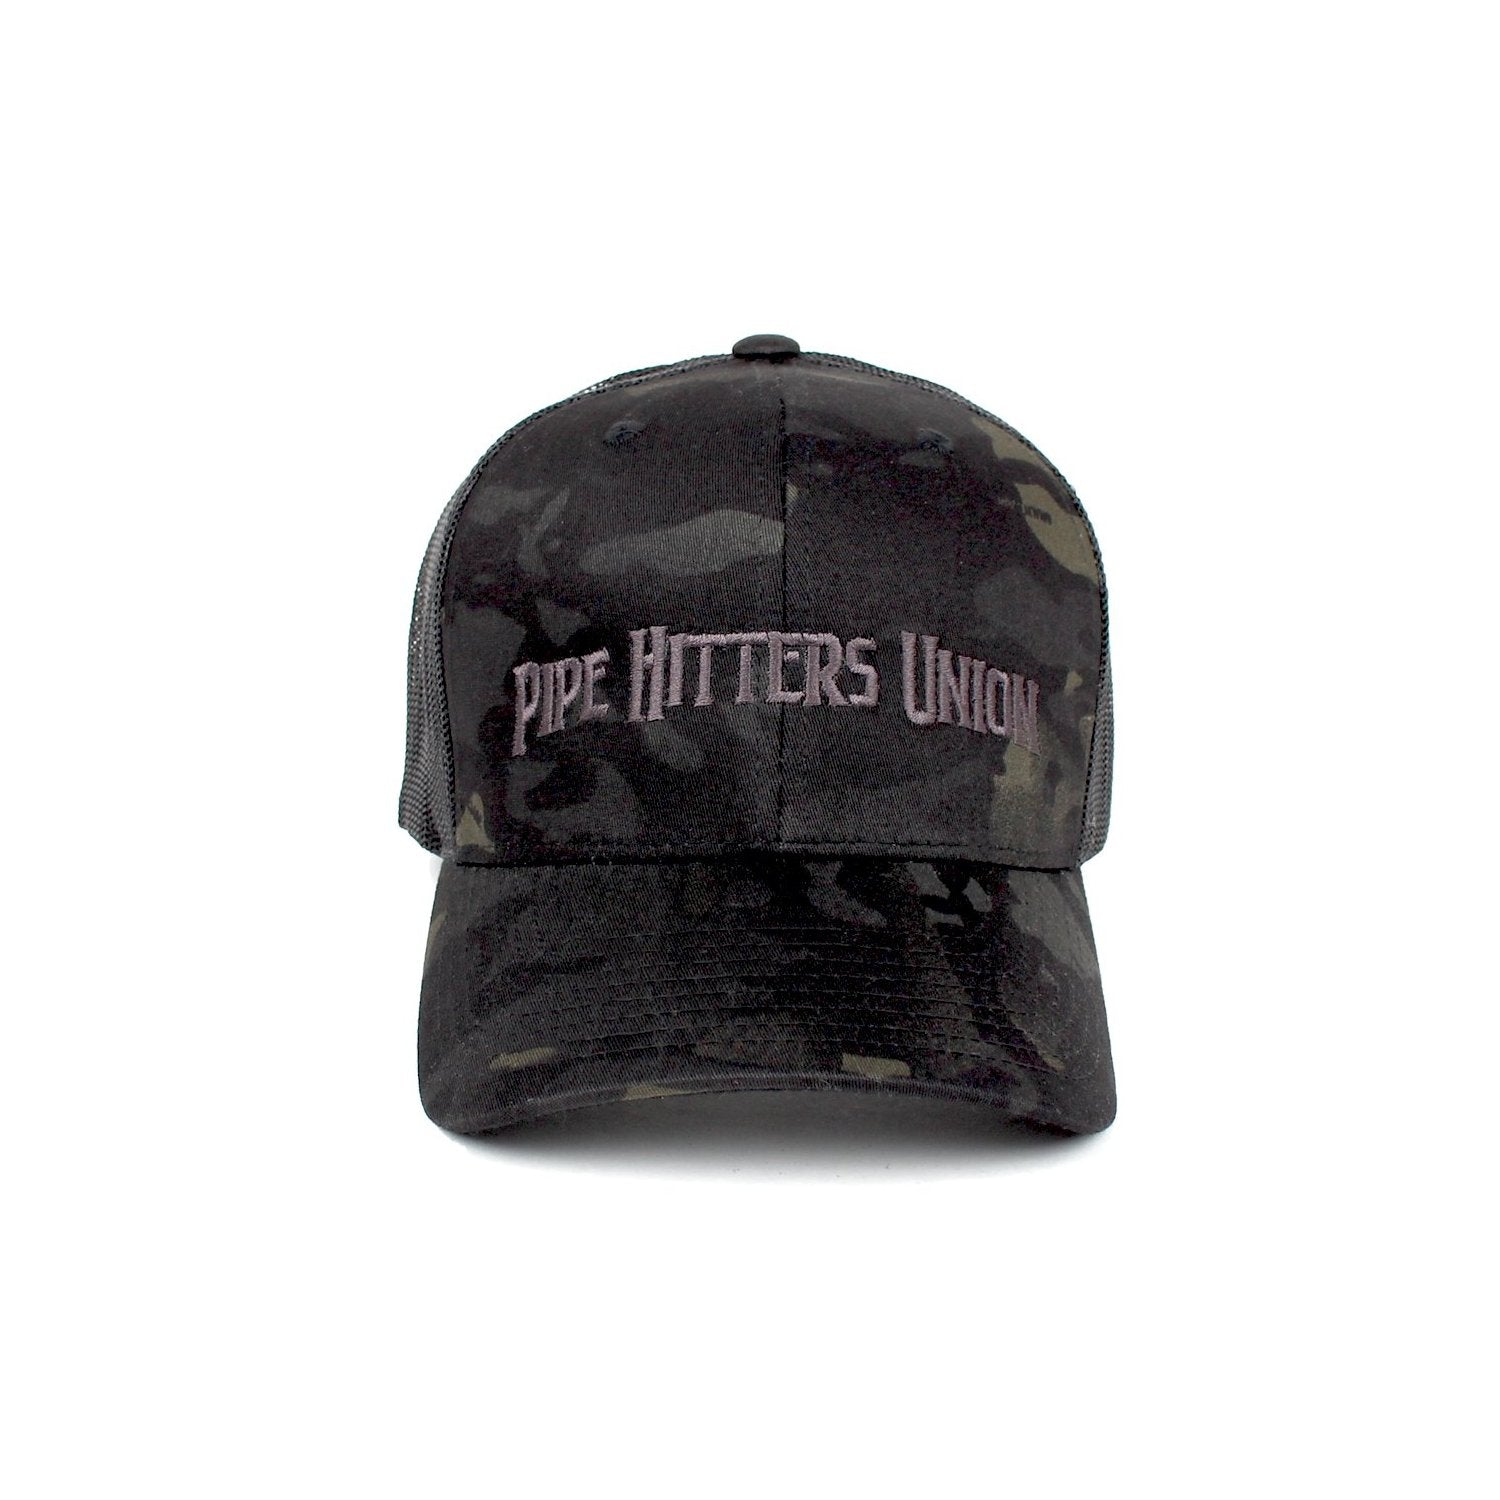 huge discount 1fcb9 46cf5 Pipe Hitters Union Trucker - Pipe Hitters Union